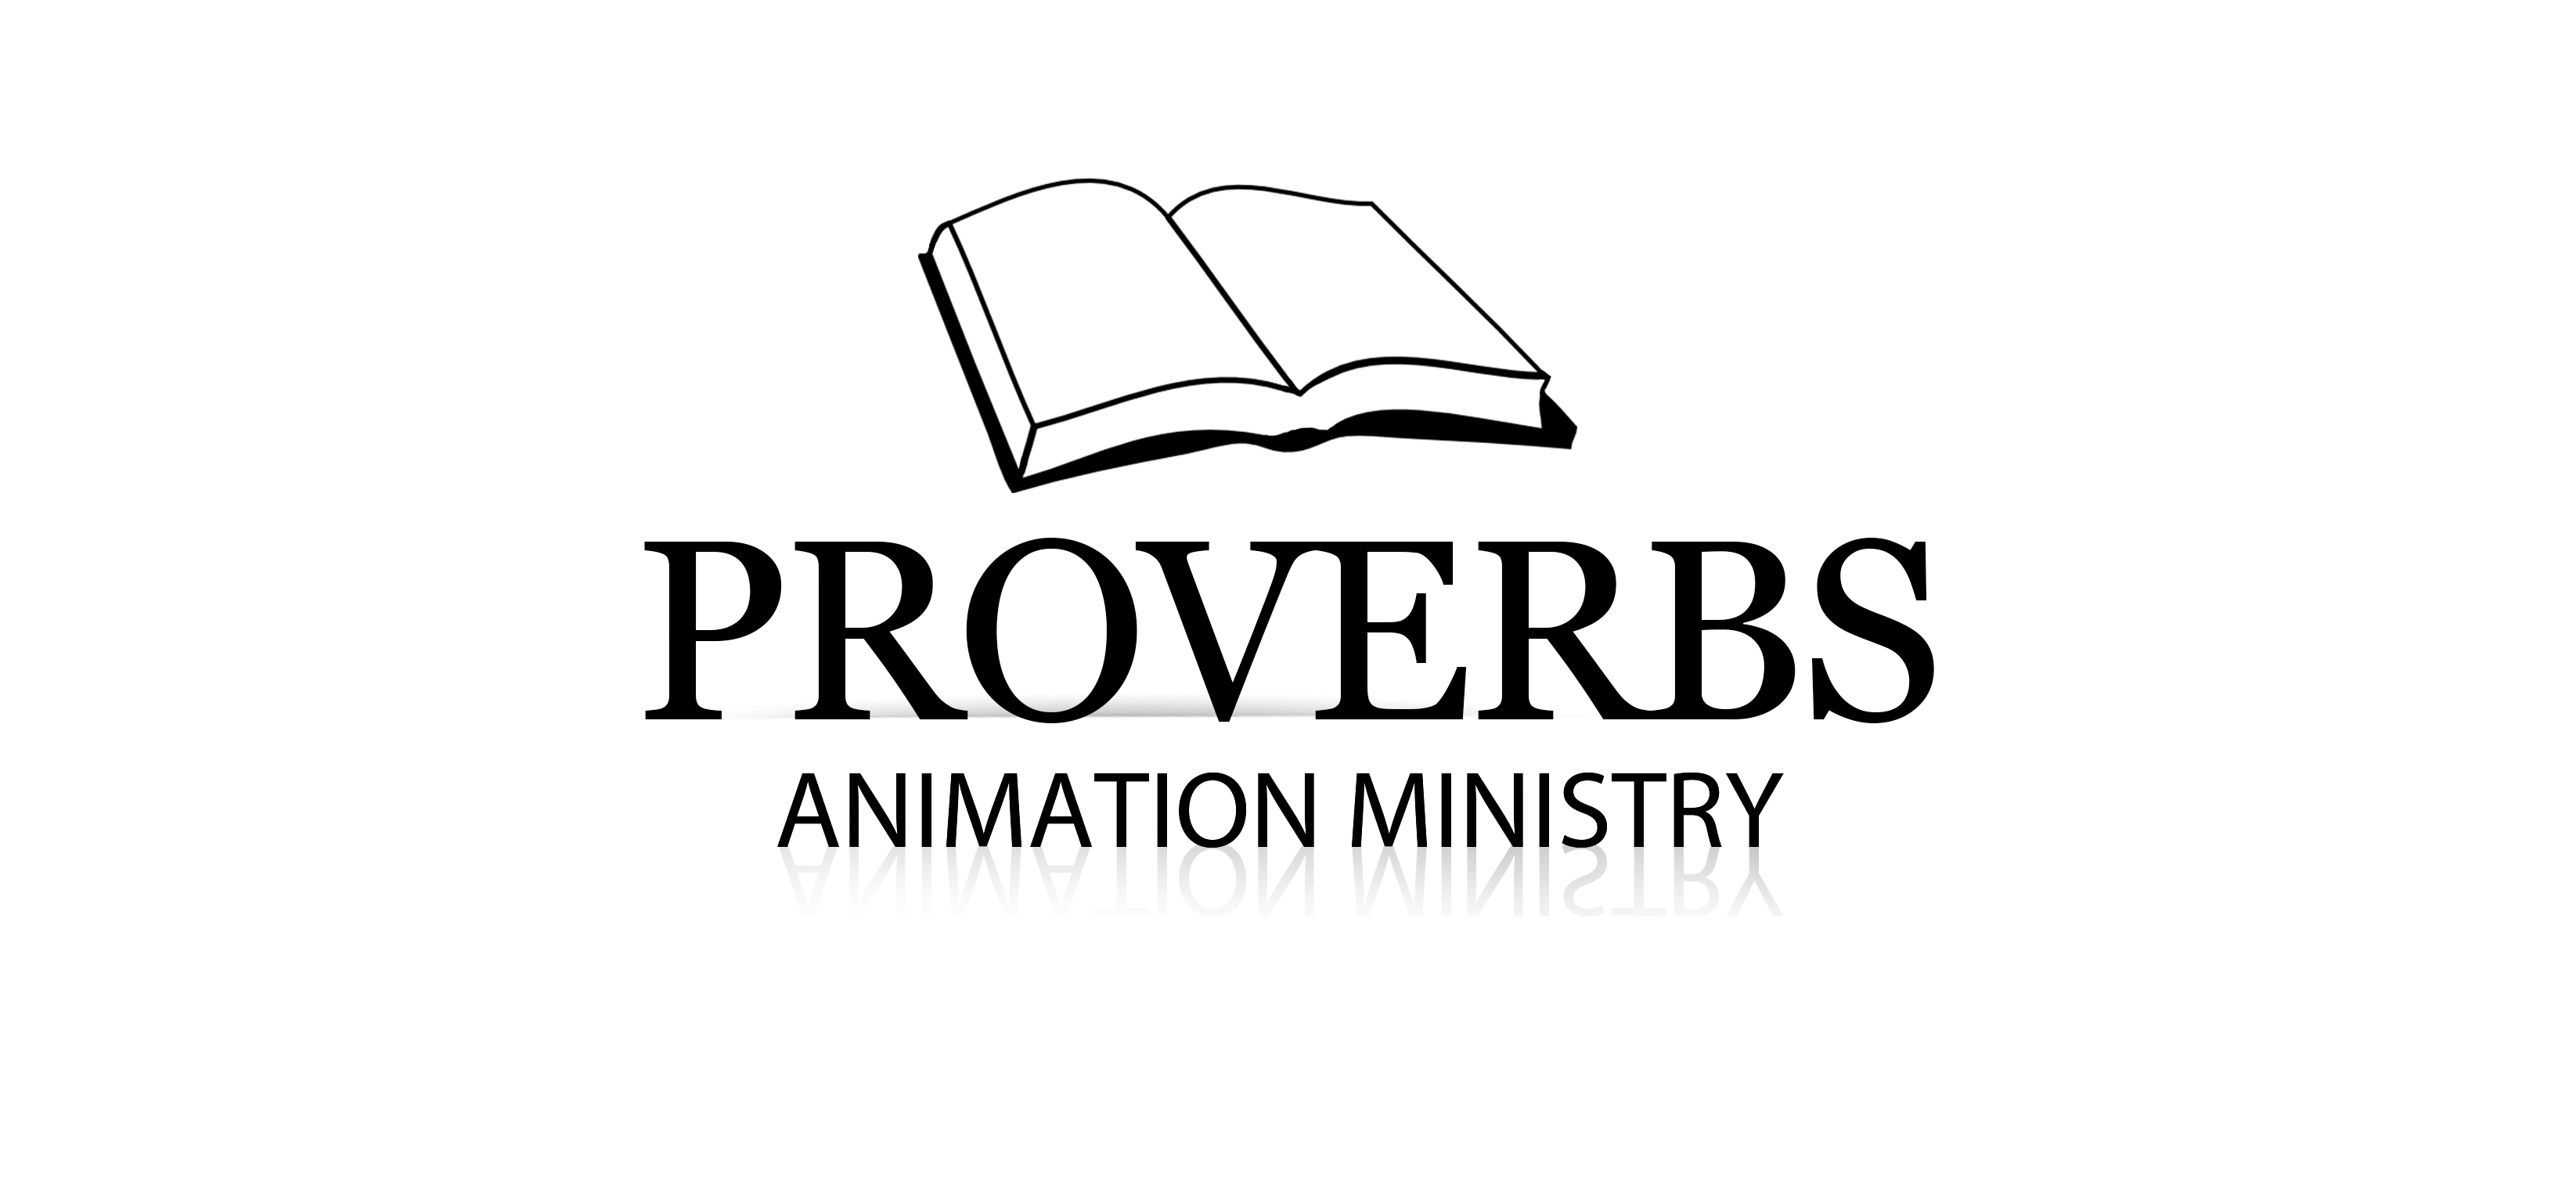 Proverbs Animation Ministry Home Of Bible Based Creating Developing High Quality Faith For Churches Schools And Families